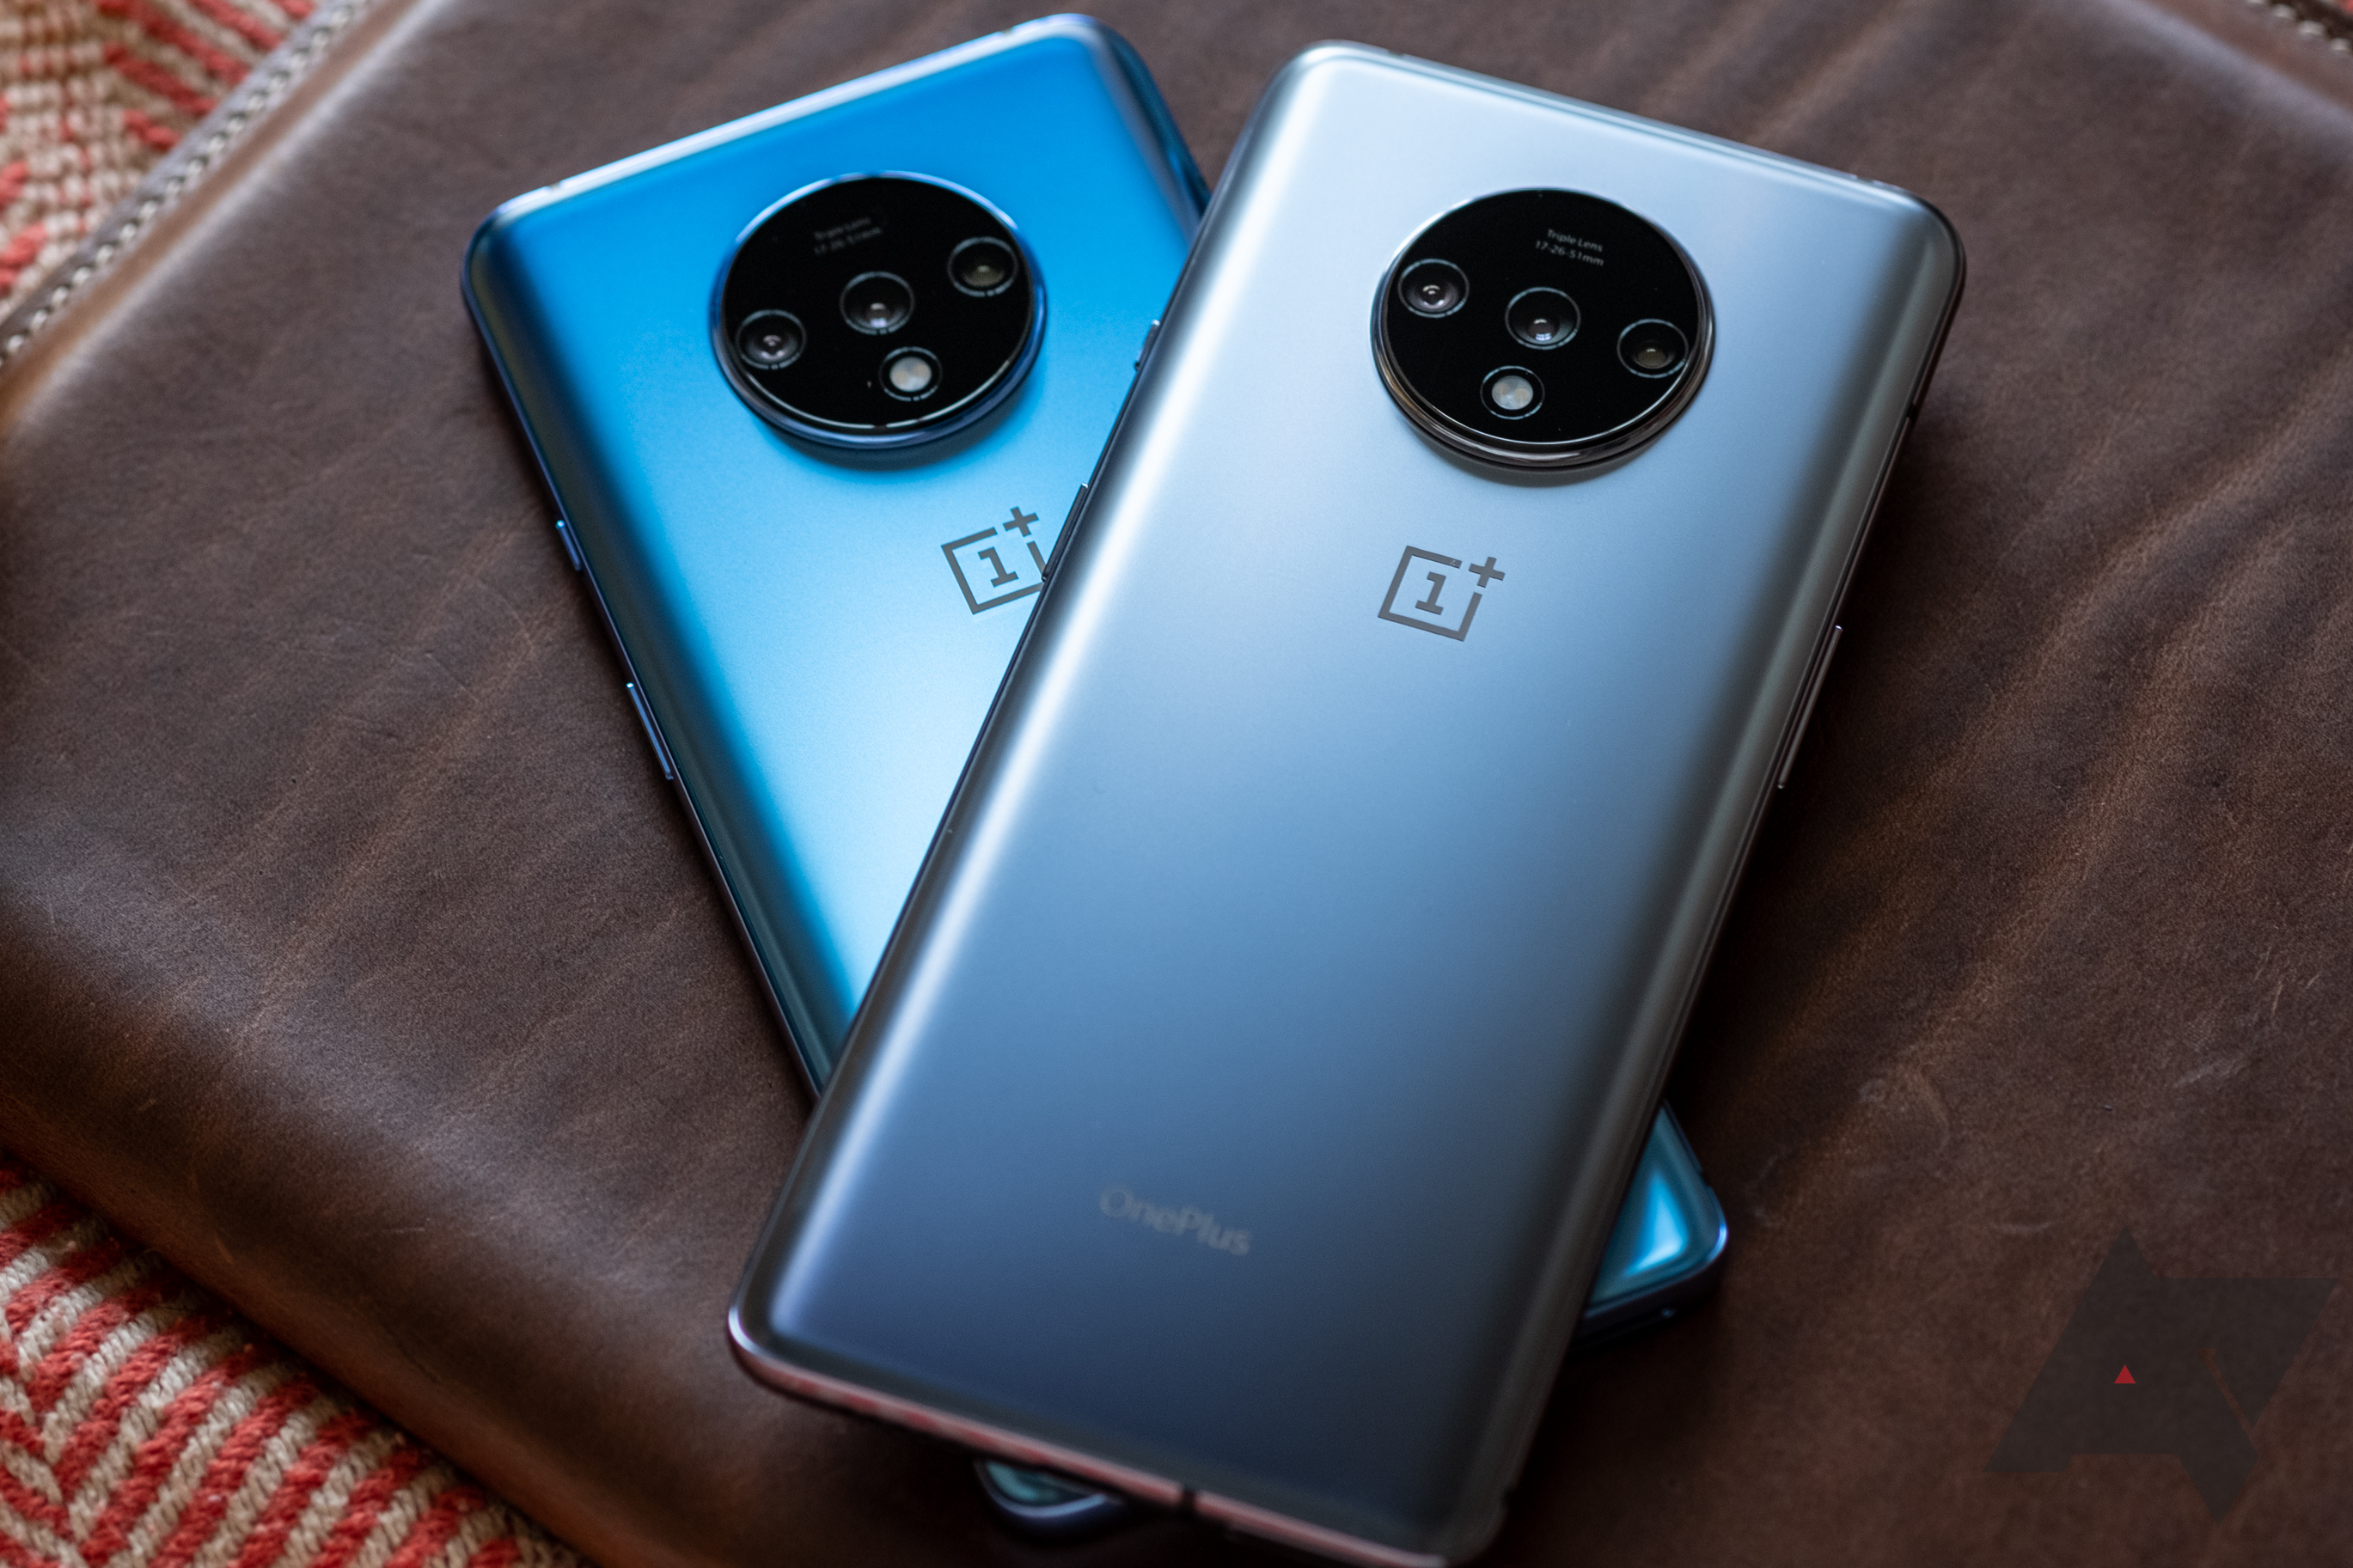 OnePlus 7T factory image now available for download